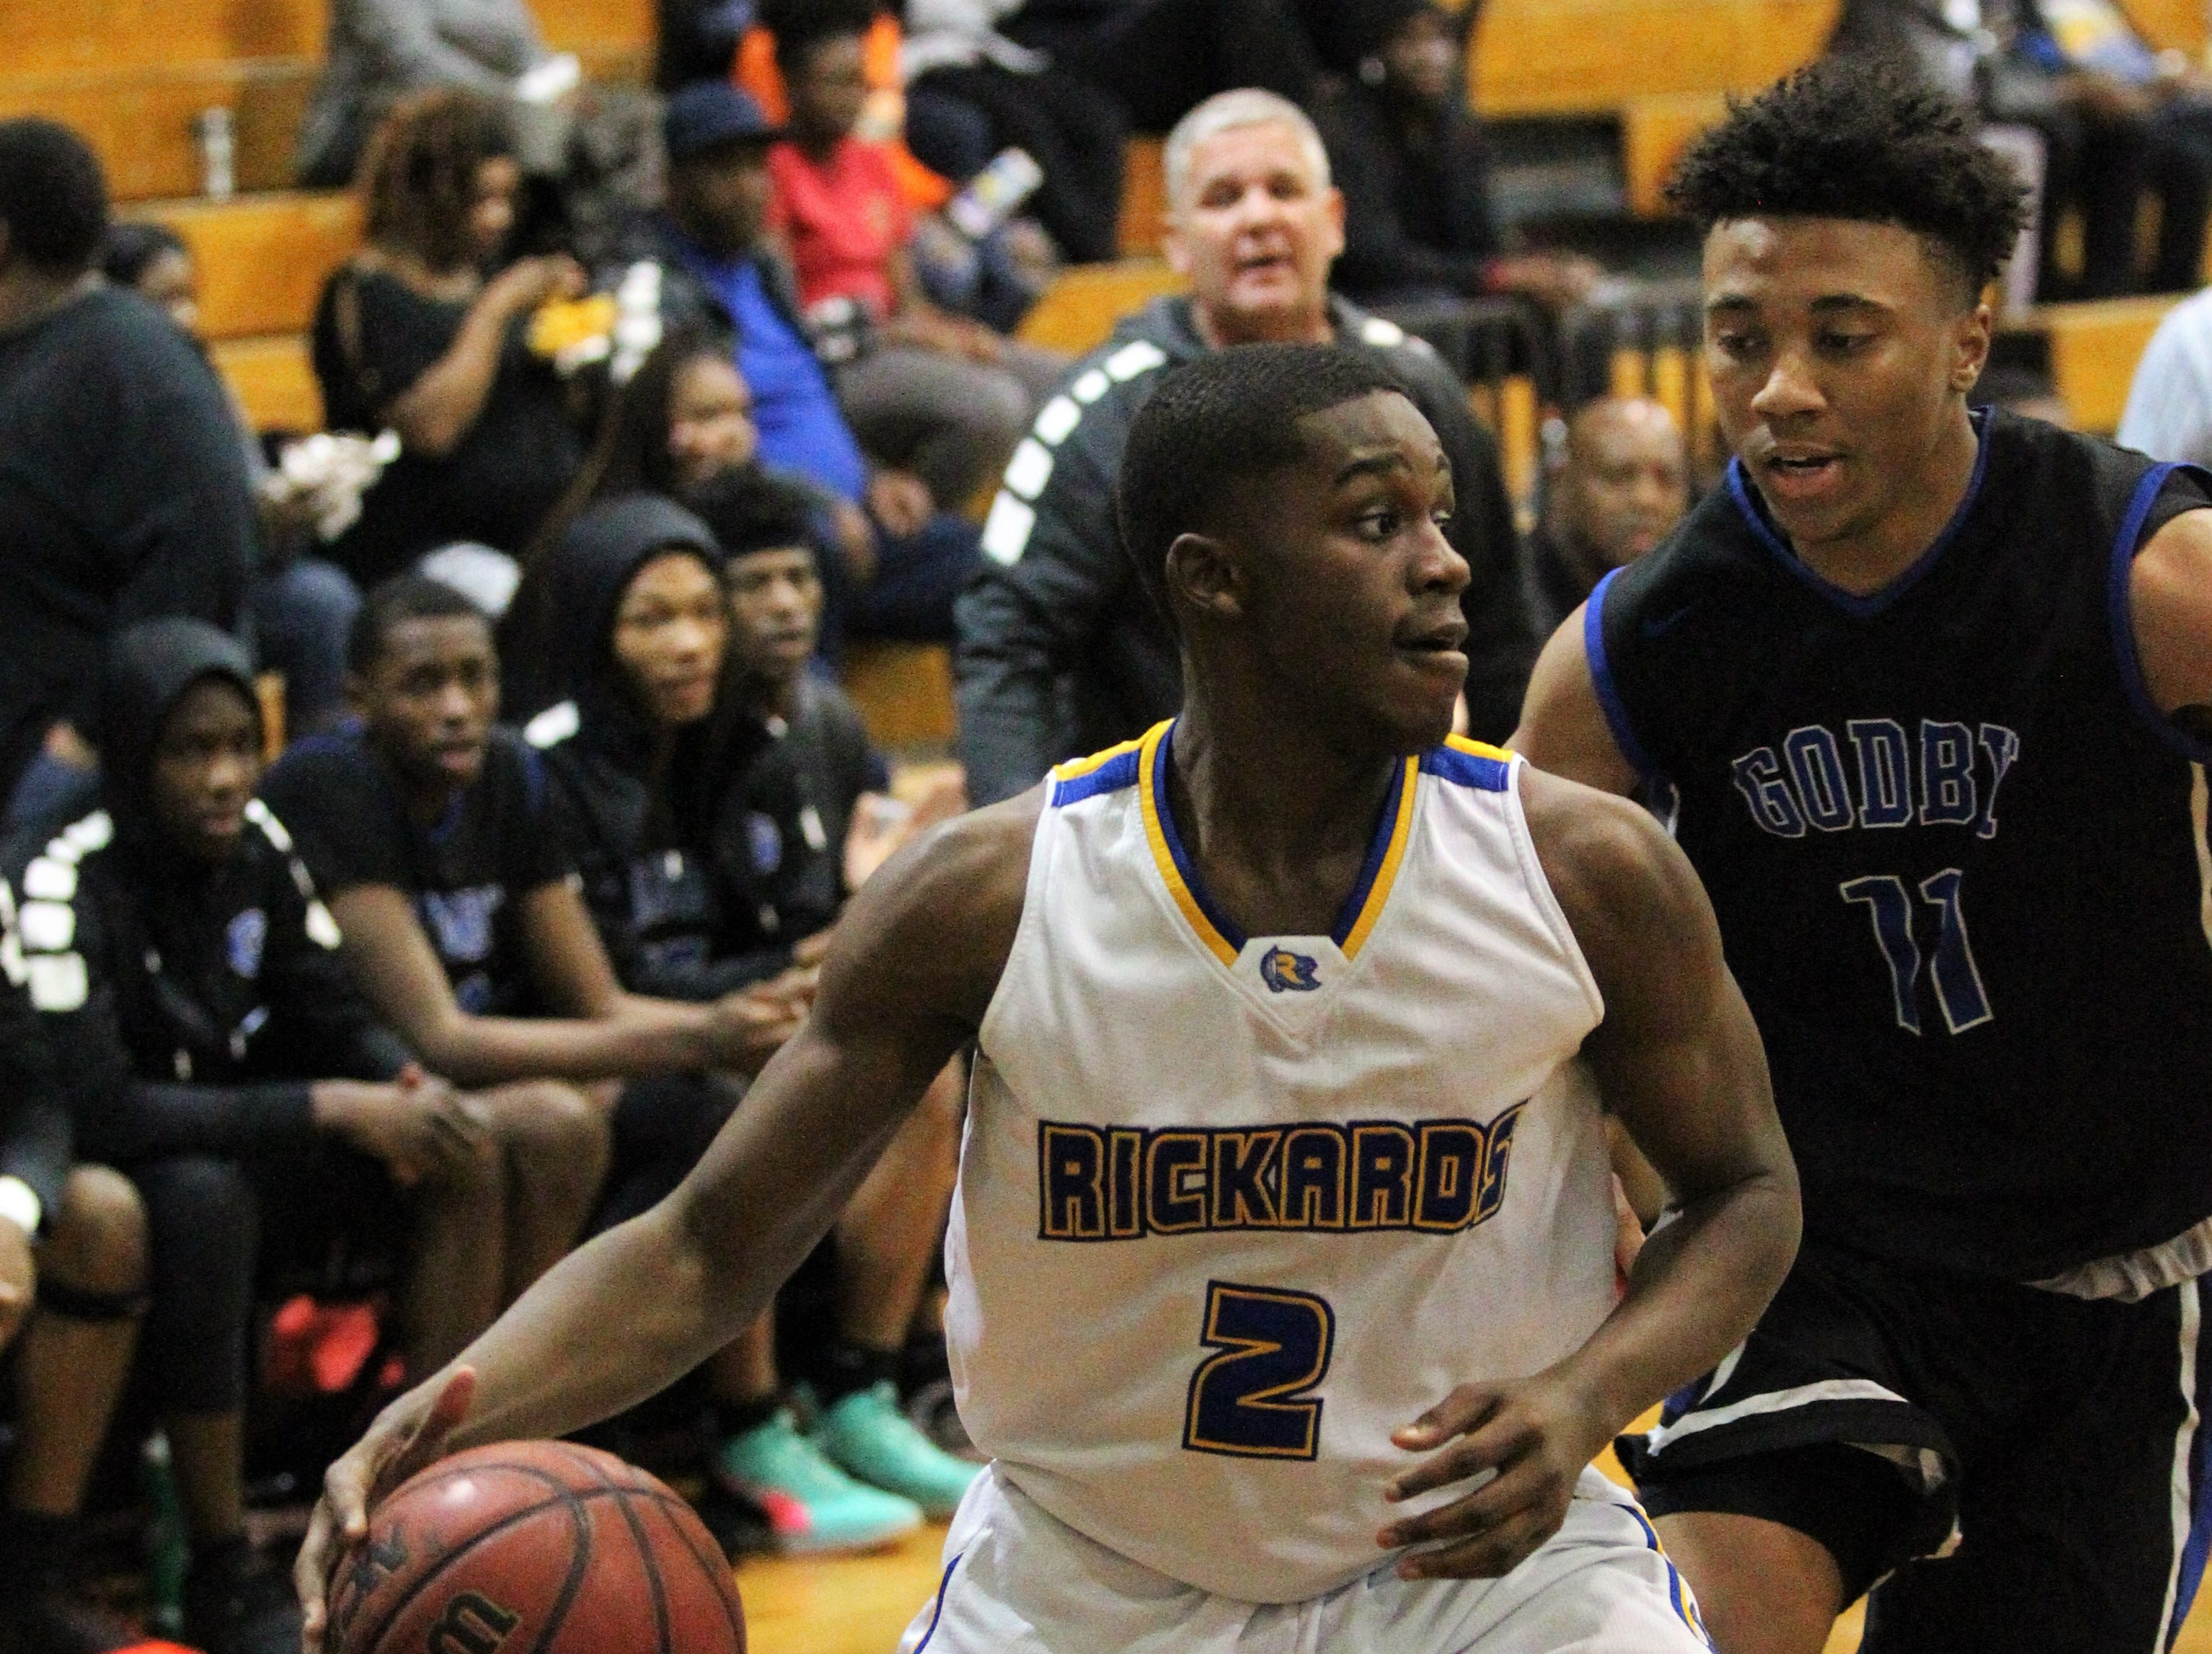 Rickards' Otis Young drives baseline as Rickards' boys basketball team beat Godby 58-47 during the District 2-6A championship at Chiles on Feb. 15, 2019.